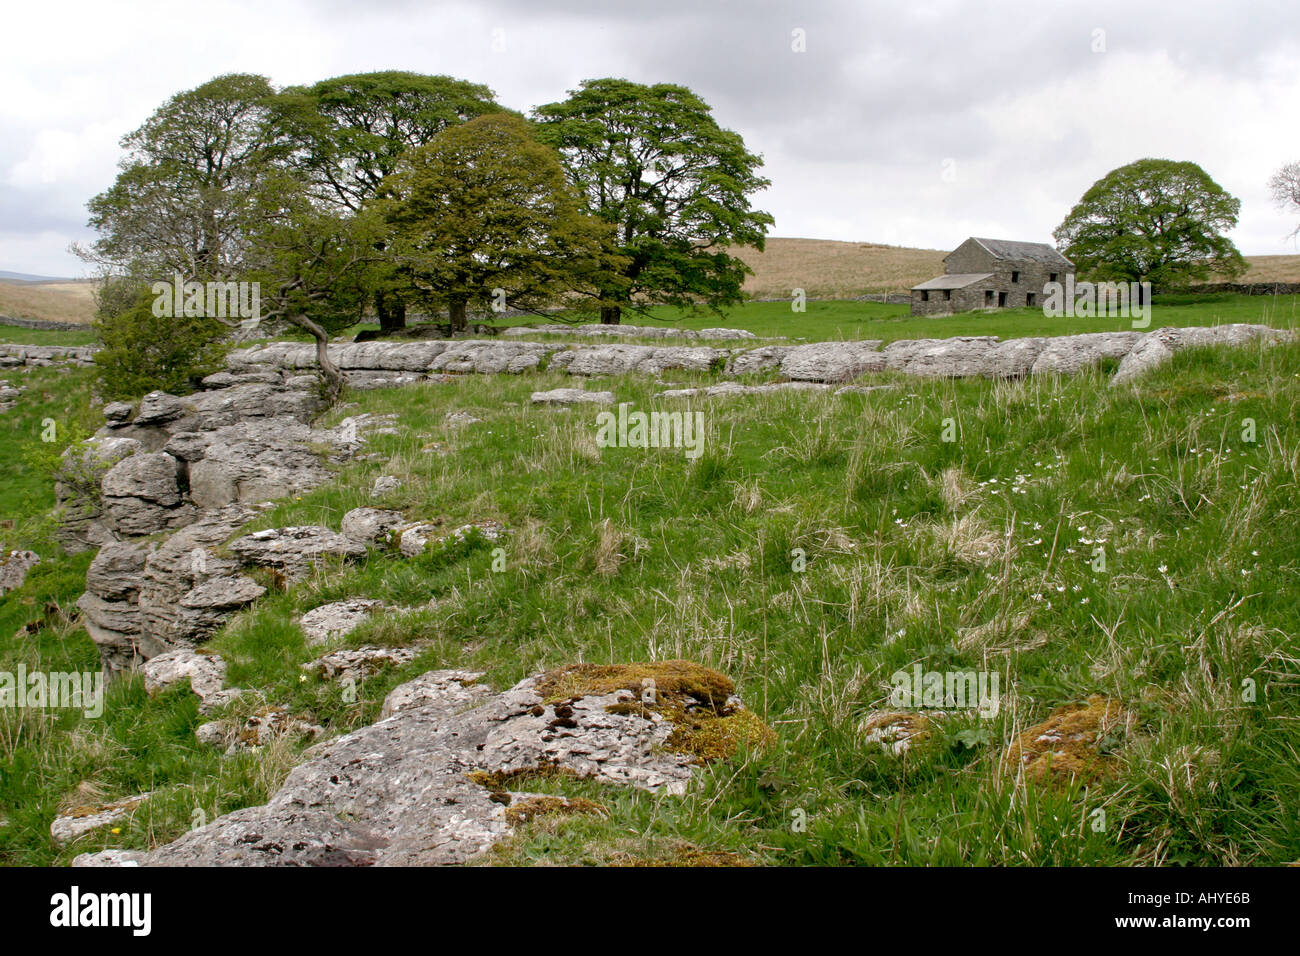 6094 Near Brow Gill Cave nr Horton in Ribblesdale Yorkshire Dales - Stock Image